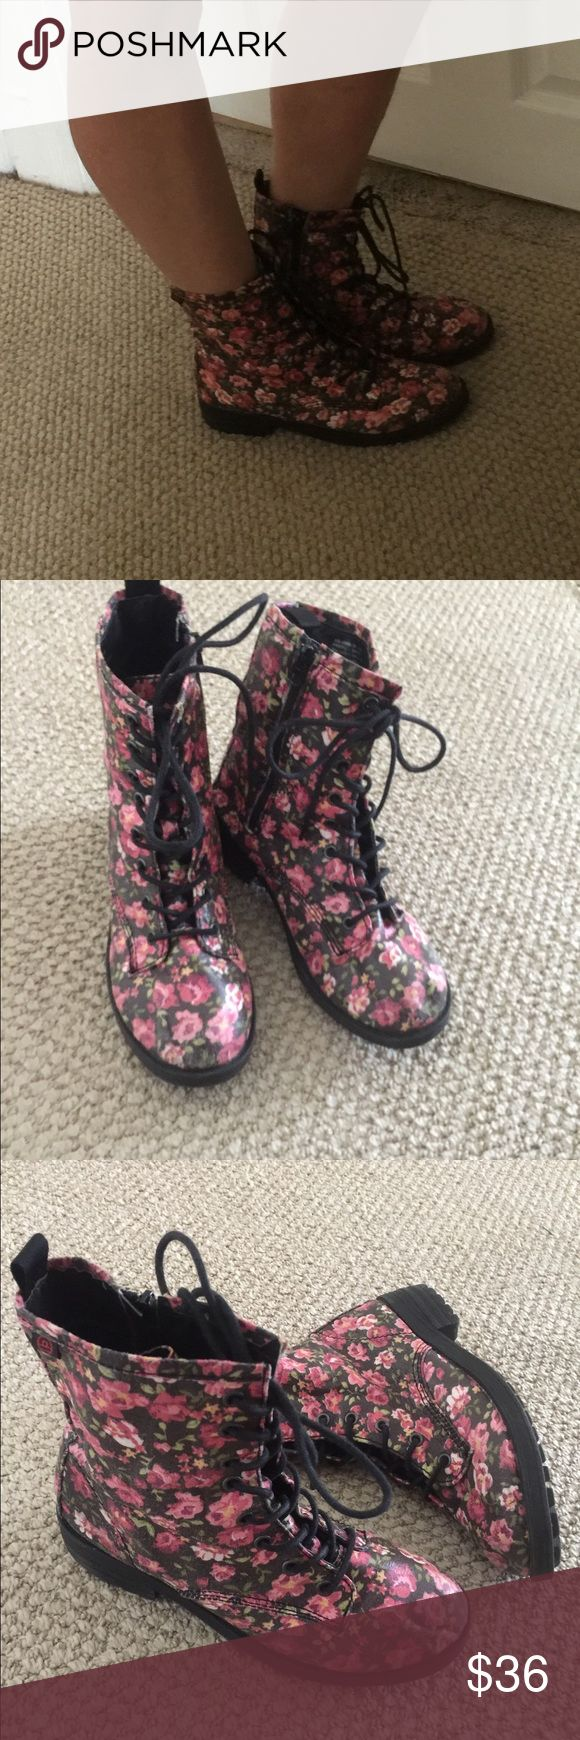 Big Buddha Floral combat Boots Great boots by Big Buddha sz 8.Light weight so you can wear  them in the spring or summer.Zipper inside ankle.Tie fronts.Very nice condition /only worn a few times. Big Buddha Shoes Combat & Moto Boots